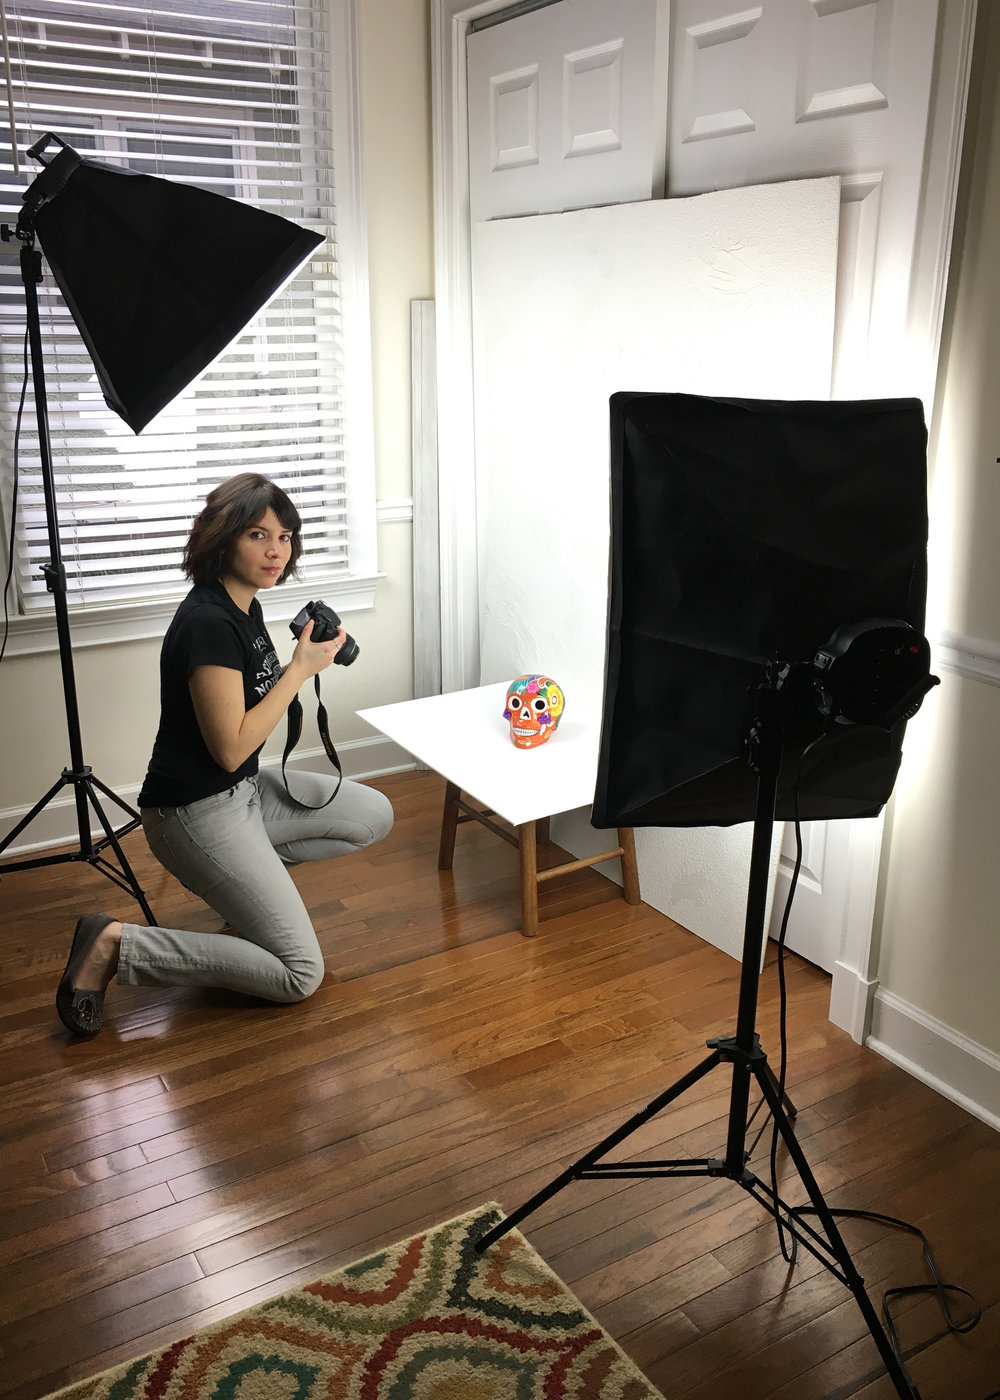 Angelique snaps pictures of merchandise for her website at home. (Photo Courtesy: Angelique Sloan)